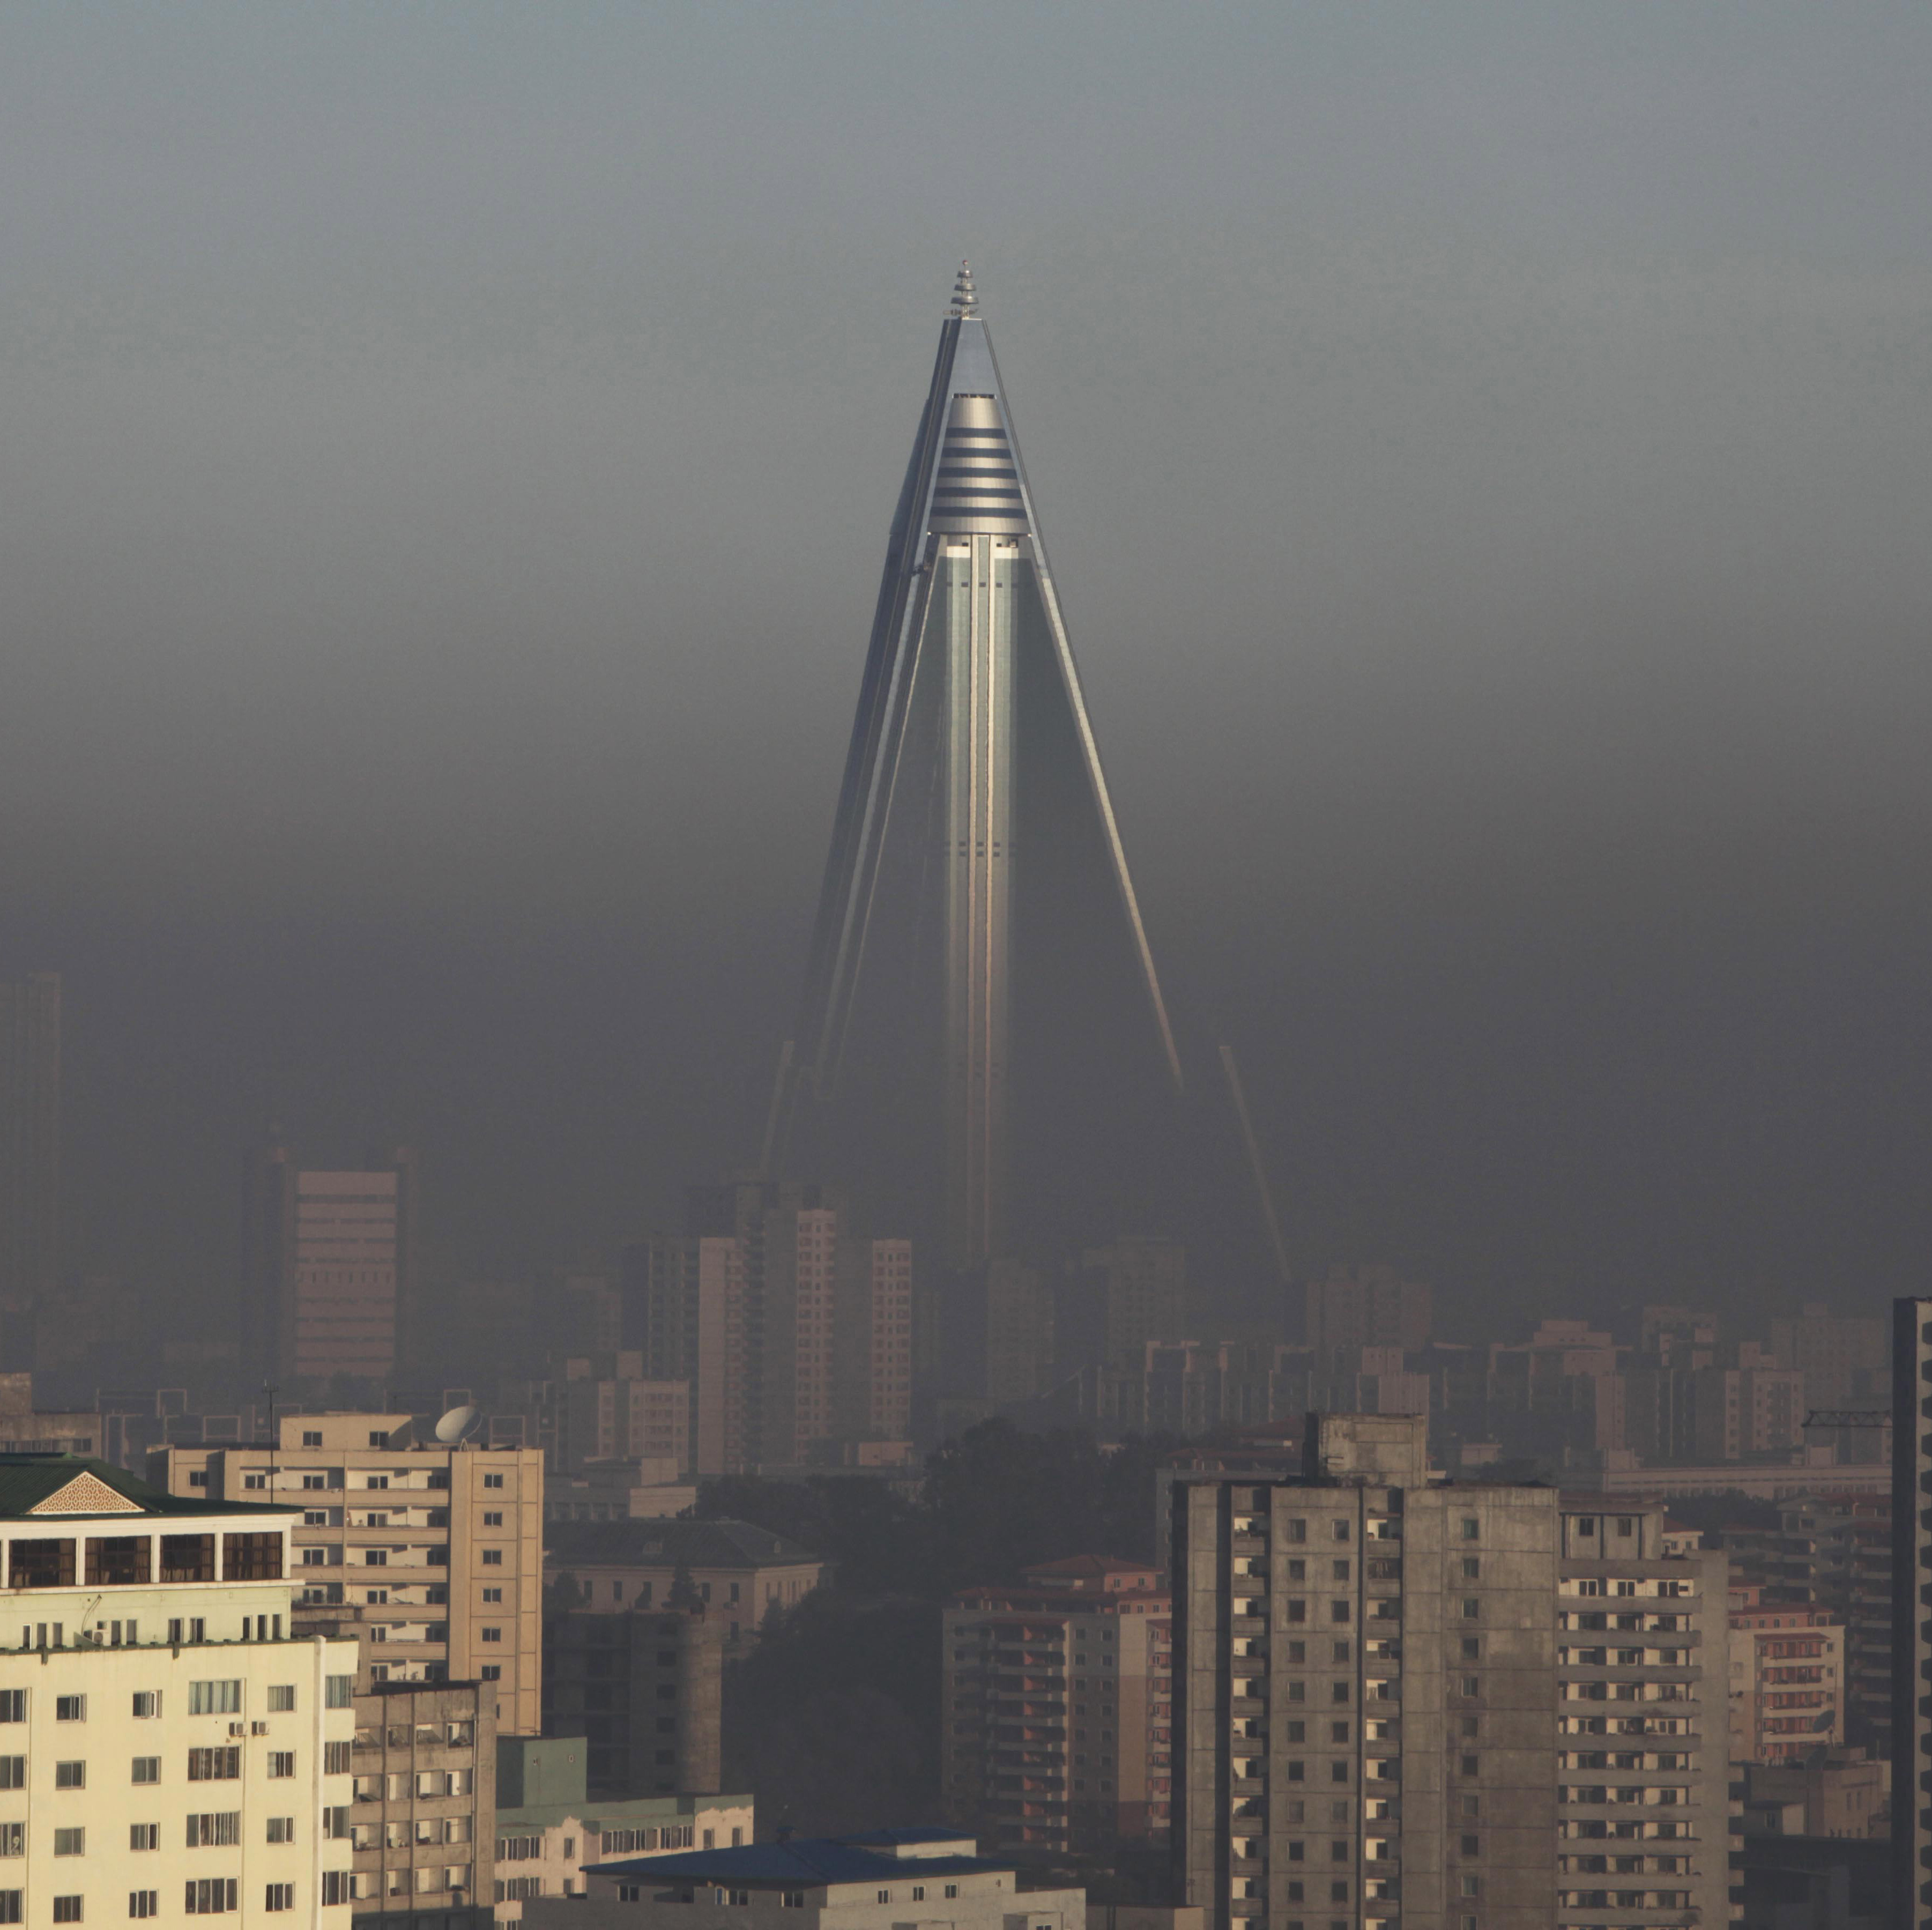 In 2011, The Associated Press released this image of the hotel rising above the smog covering Pyongyang.